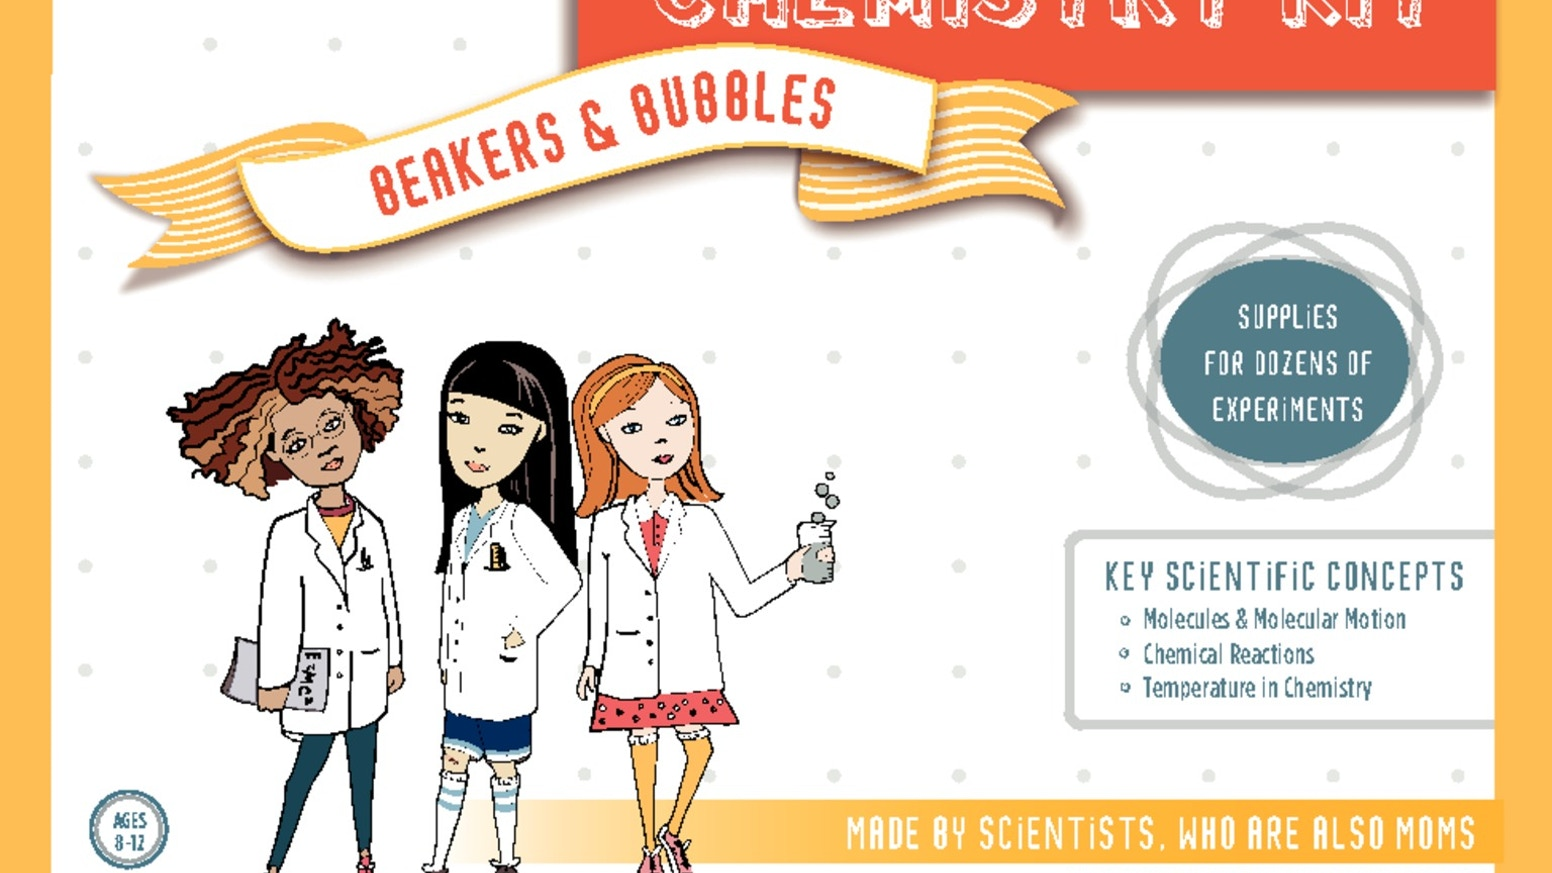 As scientists and moms, we believe every girl is a scientist at heart. We make rigorous science kits to spark her curiosity in STEM. Created by Kelly McCollum, Marcie Colledge, and Amy Compton.